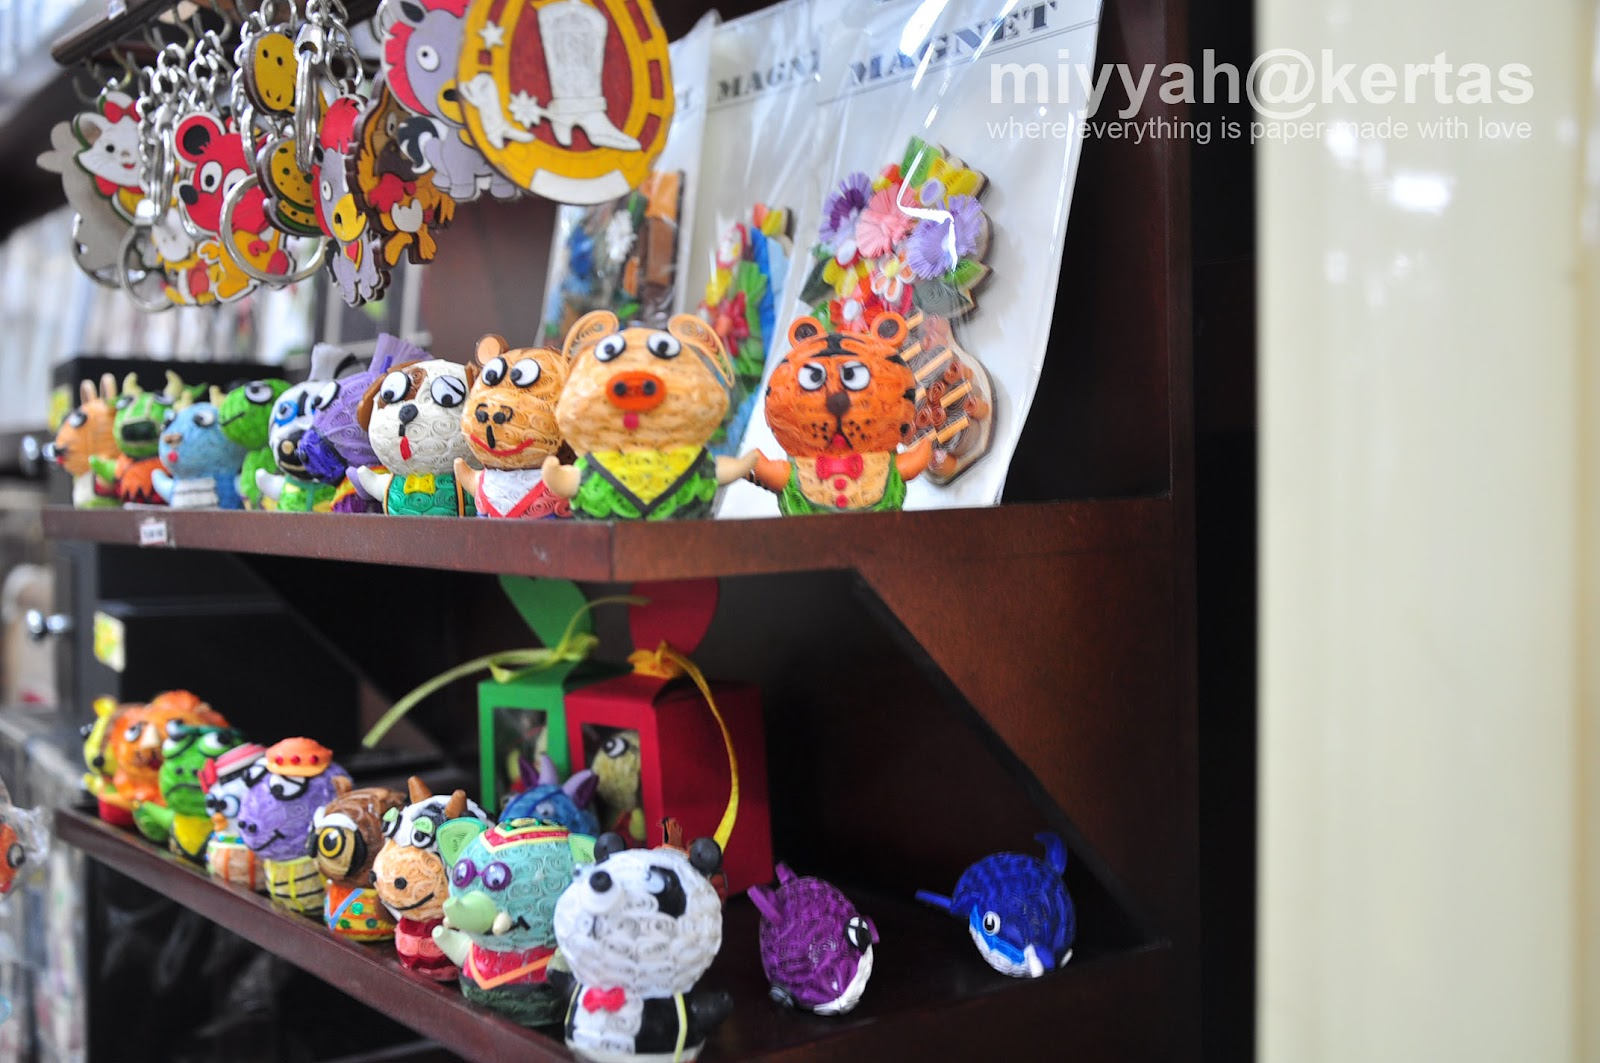 Vietnam scrapbook ideas - I Don T Know Much About Vietnamese Quilling So I Ll Leave It To You To Find That Out On Your Own Mr Google Anyone According To The Local Guide